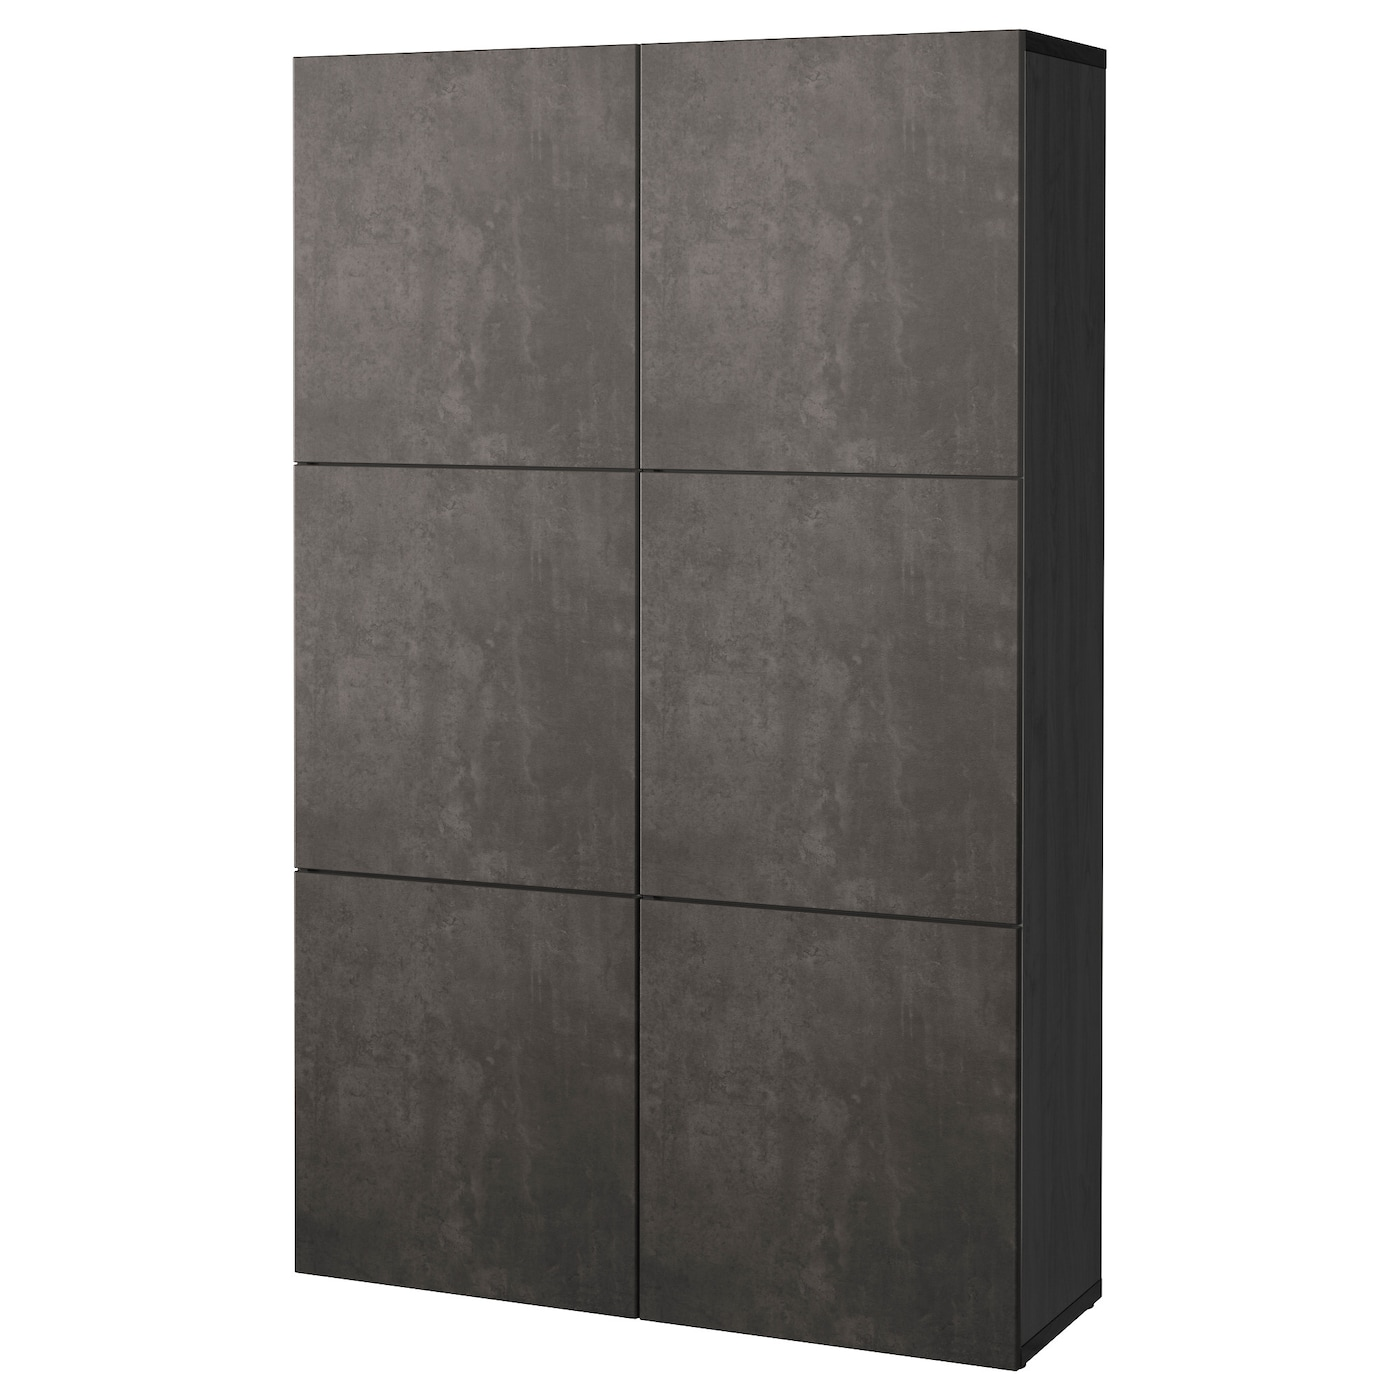 best combinaison rangement portes brun noir kallviken gris fonc imitation ciment 120 x 40 x. Black Bedroom Furniture Sets. Home Design Ideas